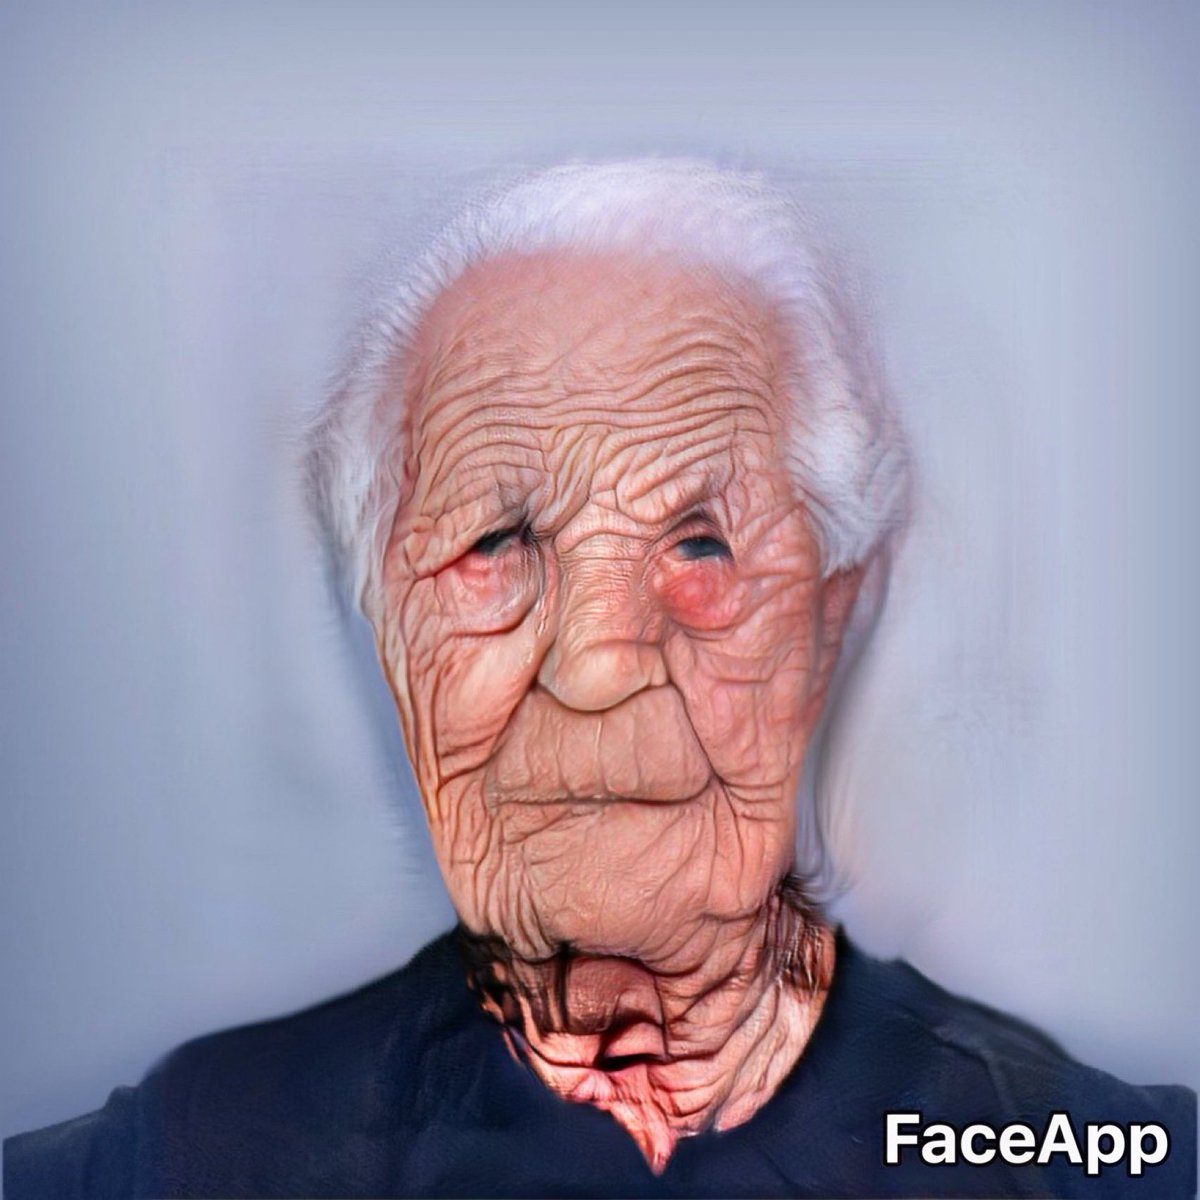 Ran my face through FaceApp a few times and it's not looking good if I make it to 140 years old